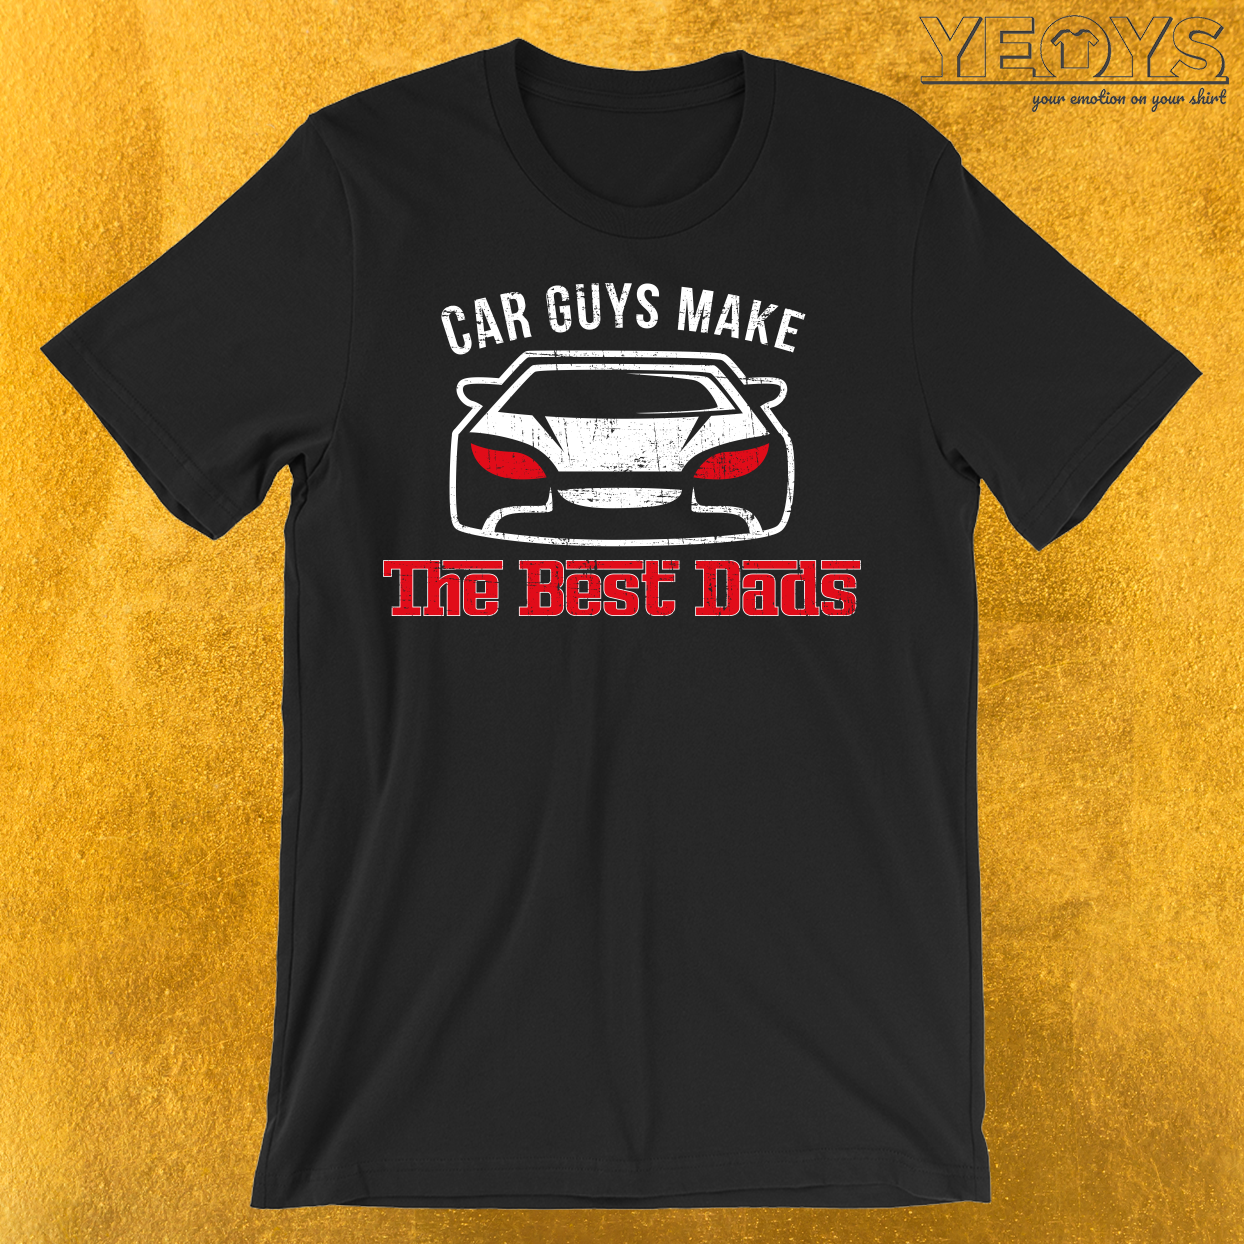 Car Guys Make The Best Dads T-Shirt